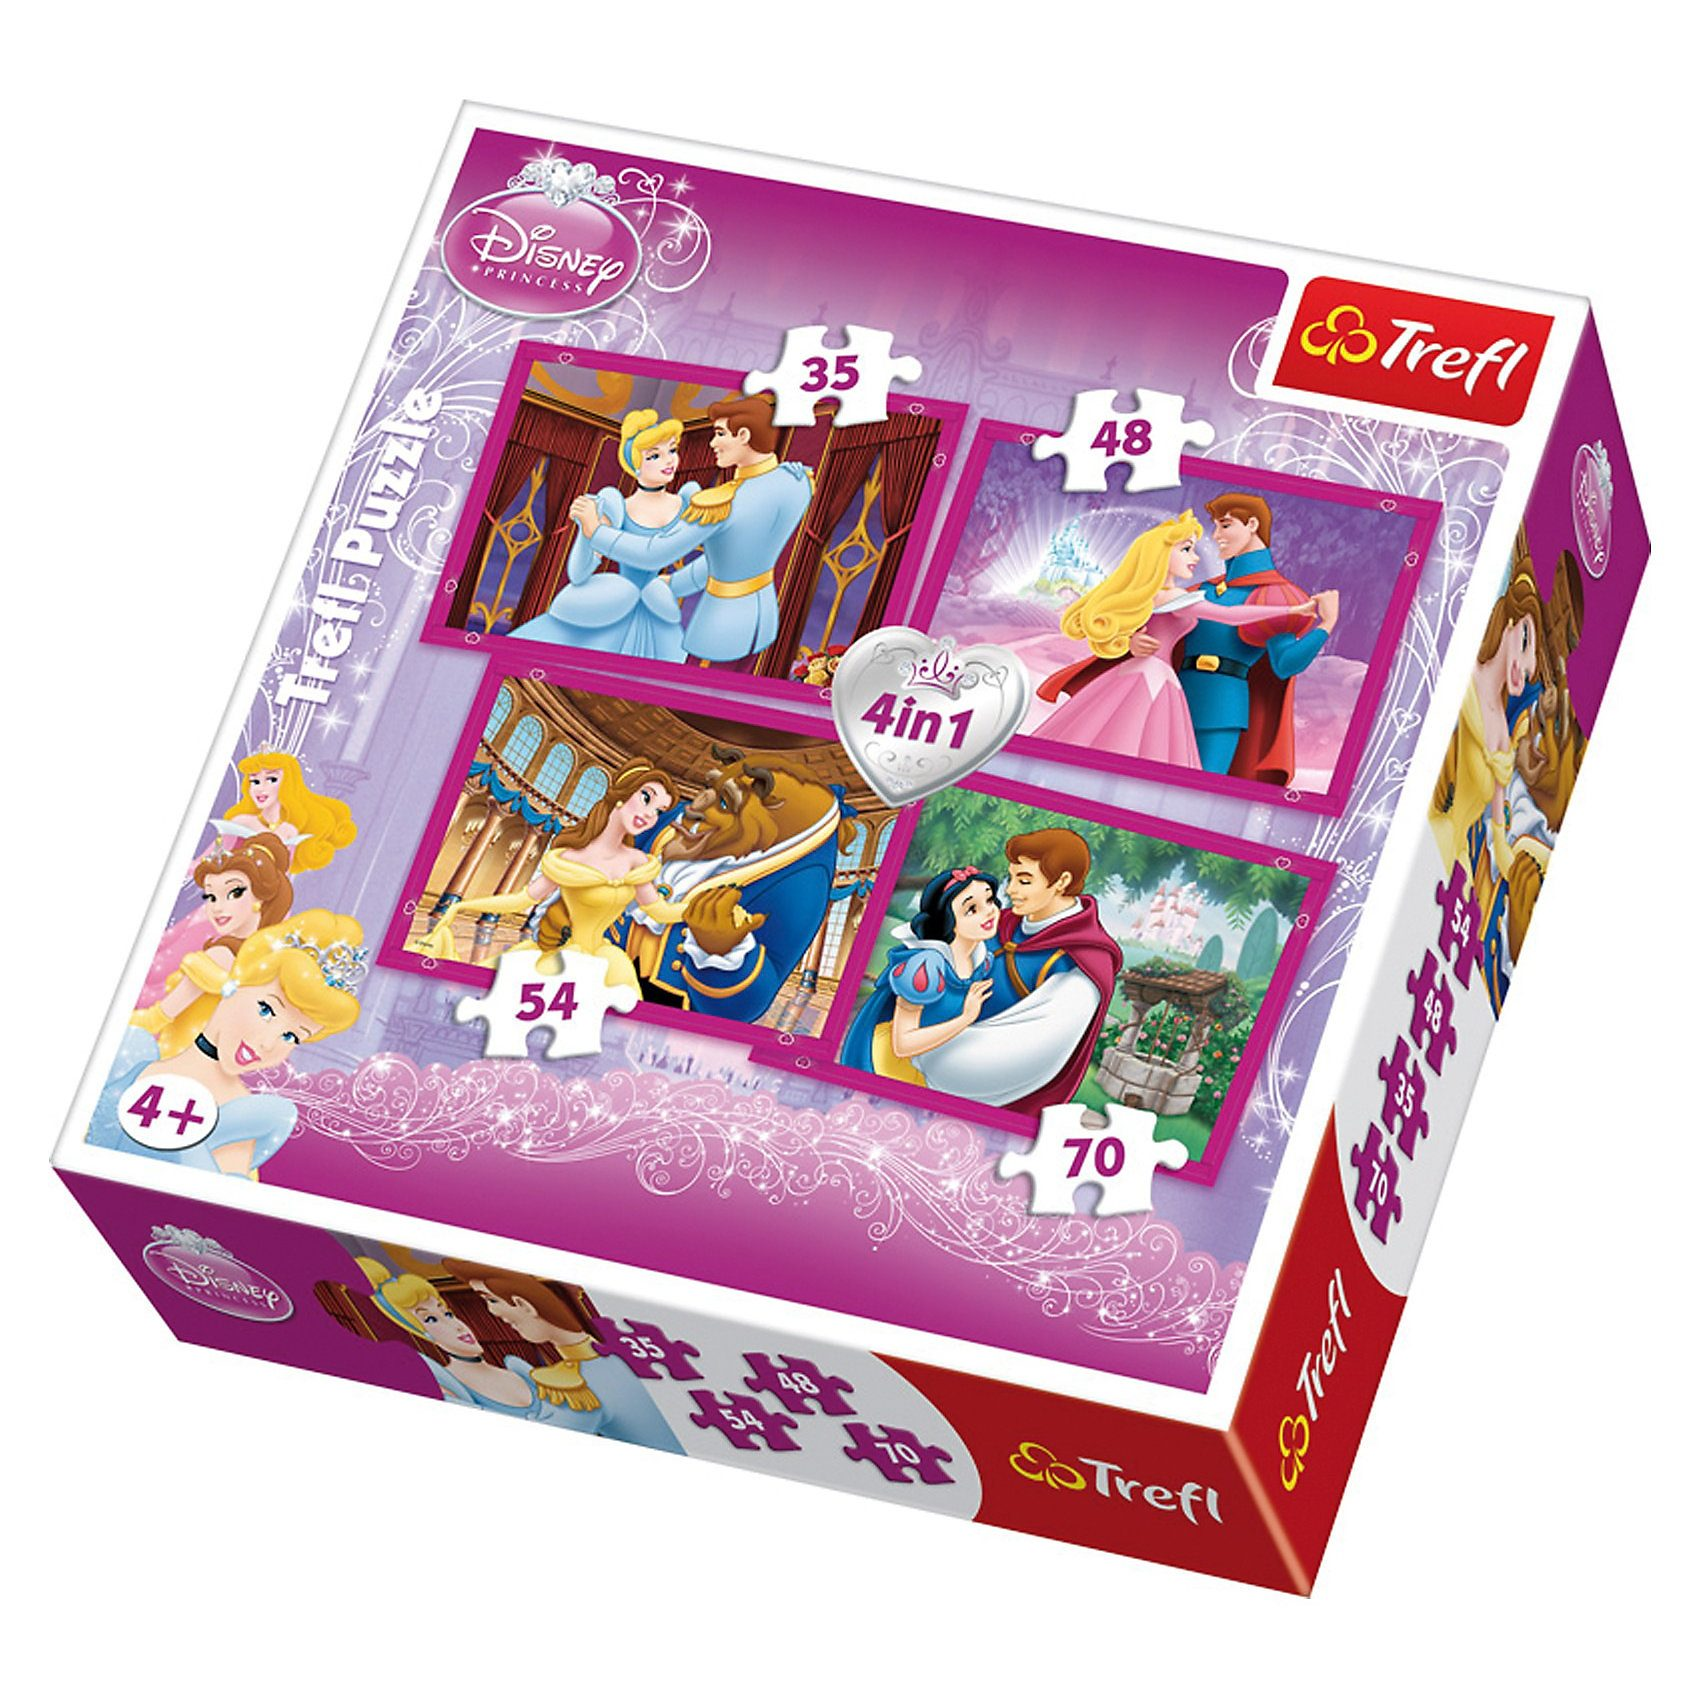 Trefl Puzzle-Set 4in1 - 35/48/54/70 Teile - Princess